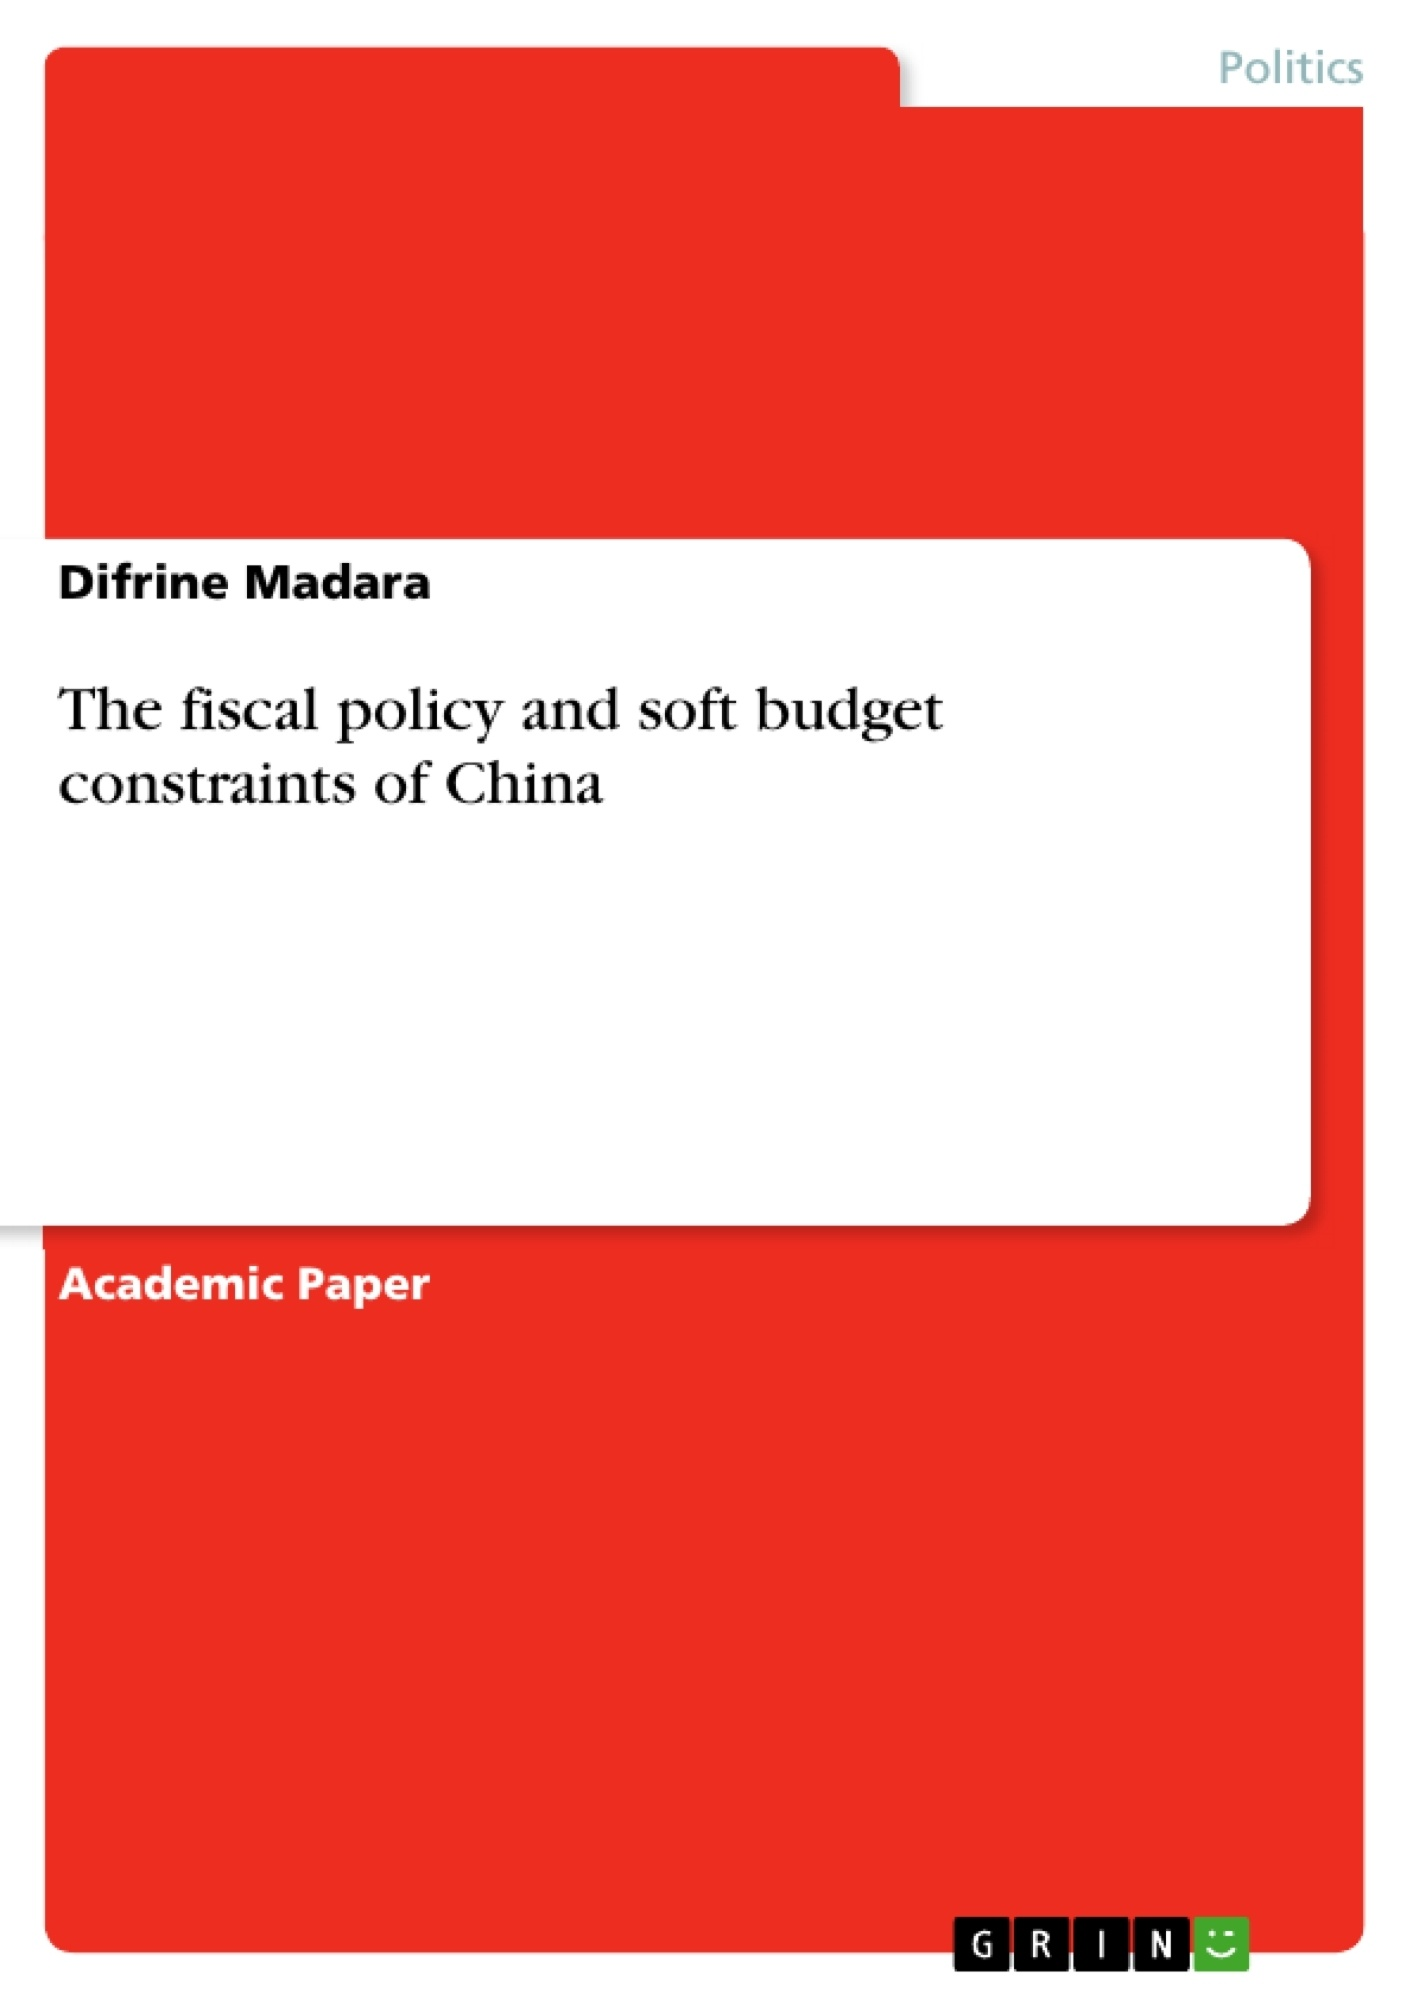 Title: The fiscal policy and soft budget constraints of China